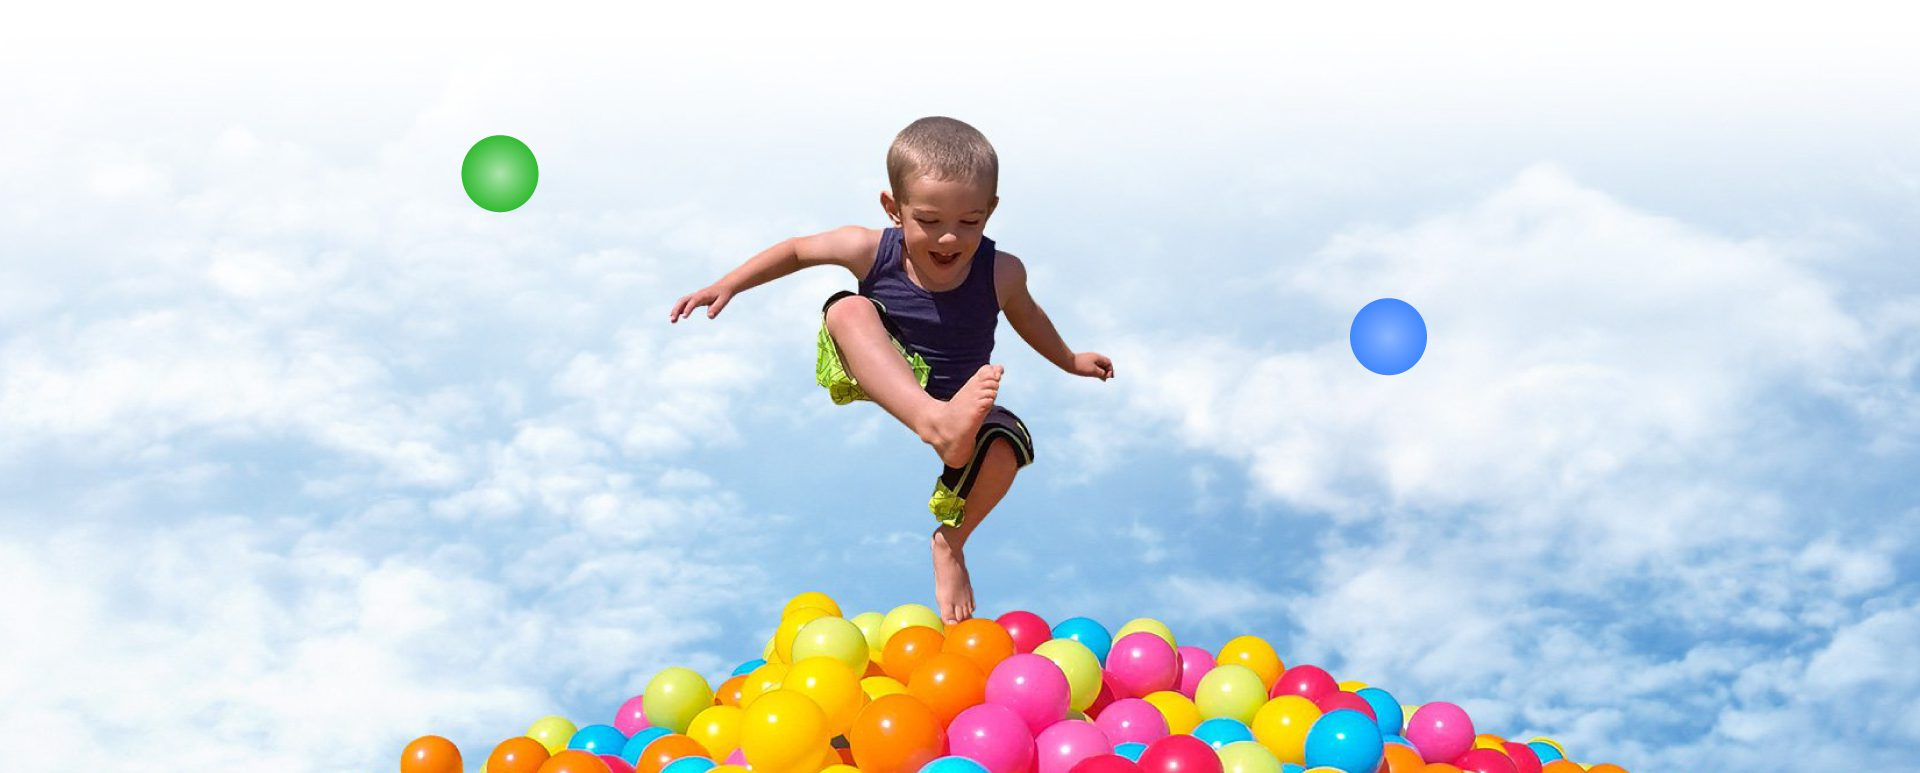 little boy jumping into a ball pit